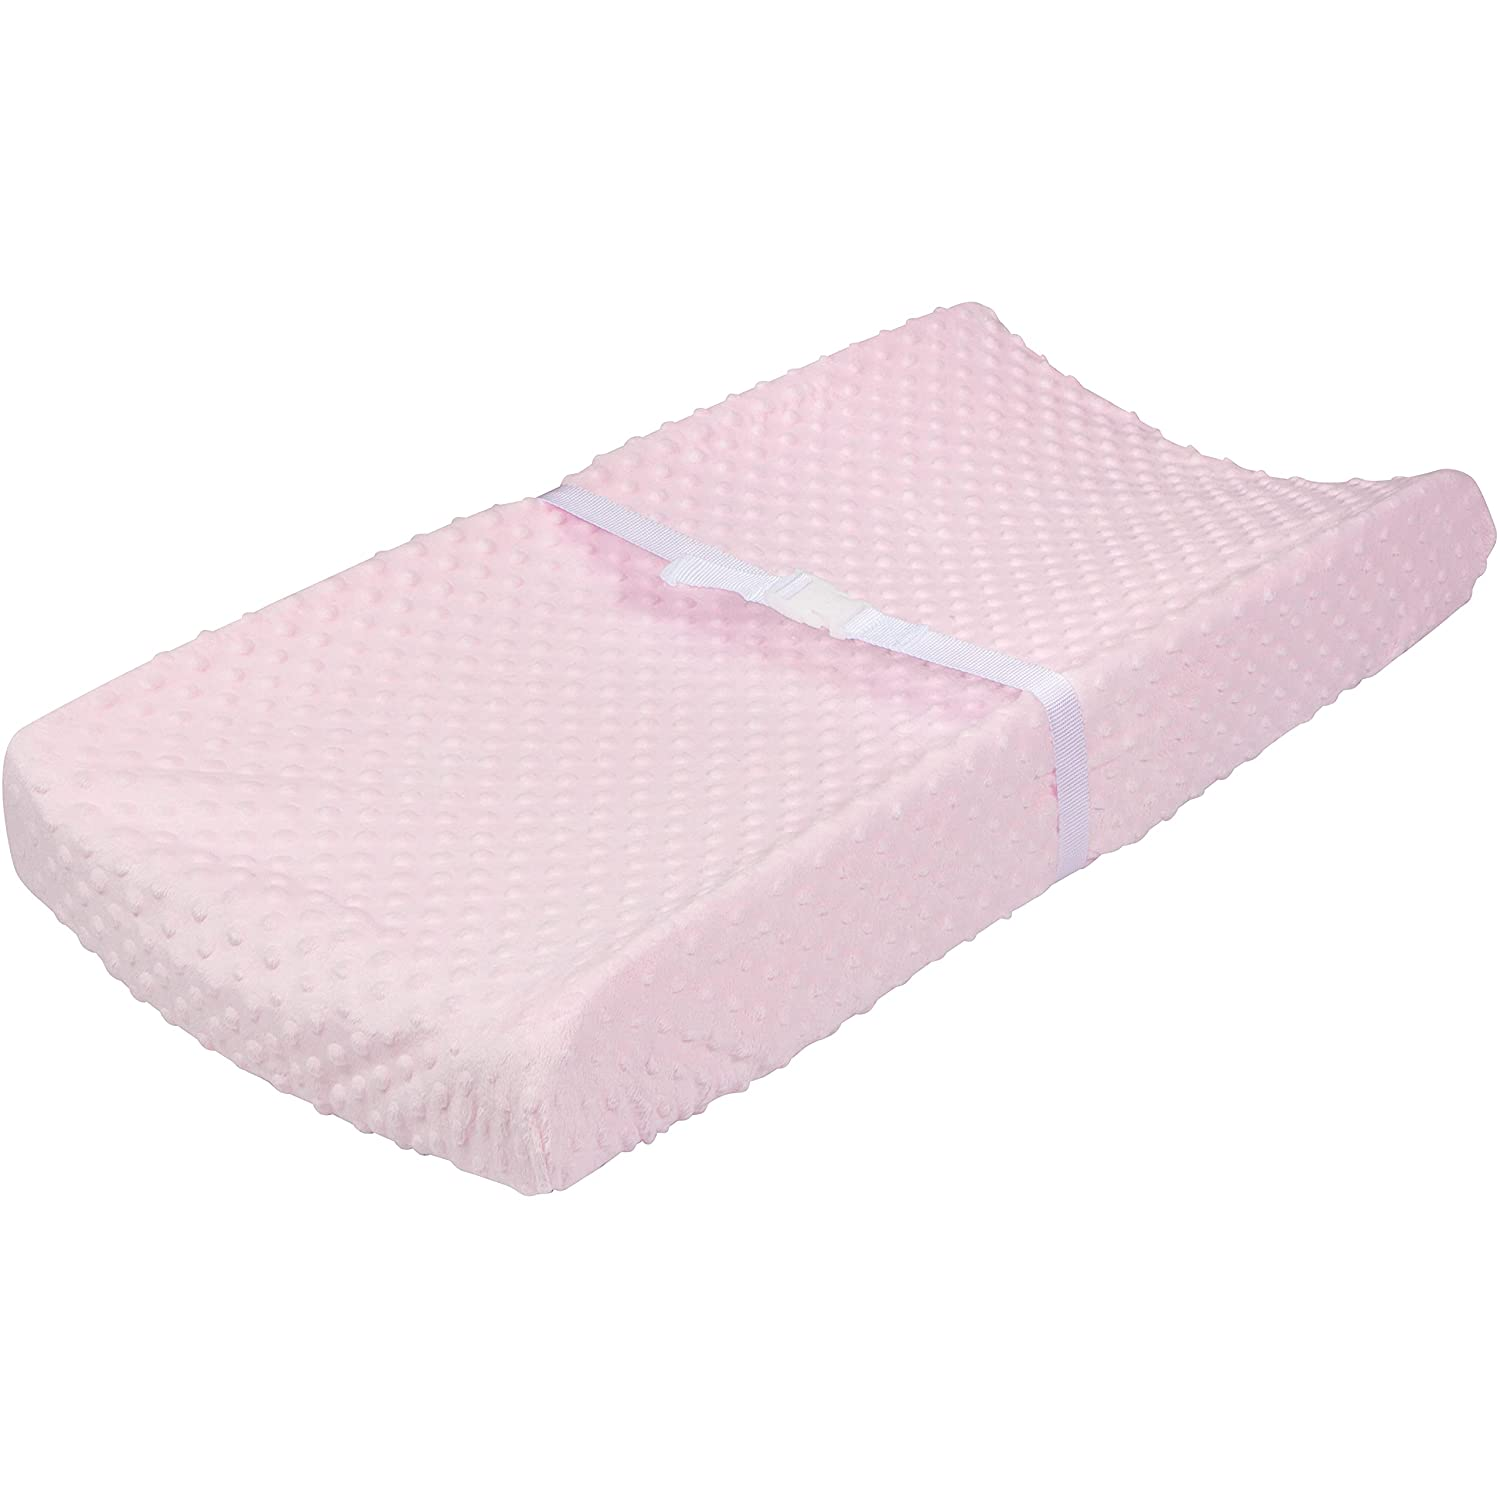 Gerber Baby Boys Girls Neutral Newborn Infant Baby Toddler Nursery Changing Pad Cover, Dotted Light Pink, 16